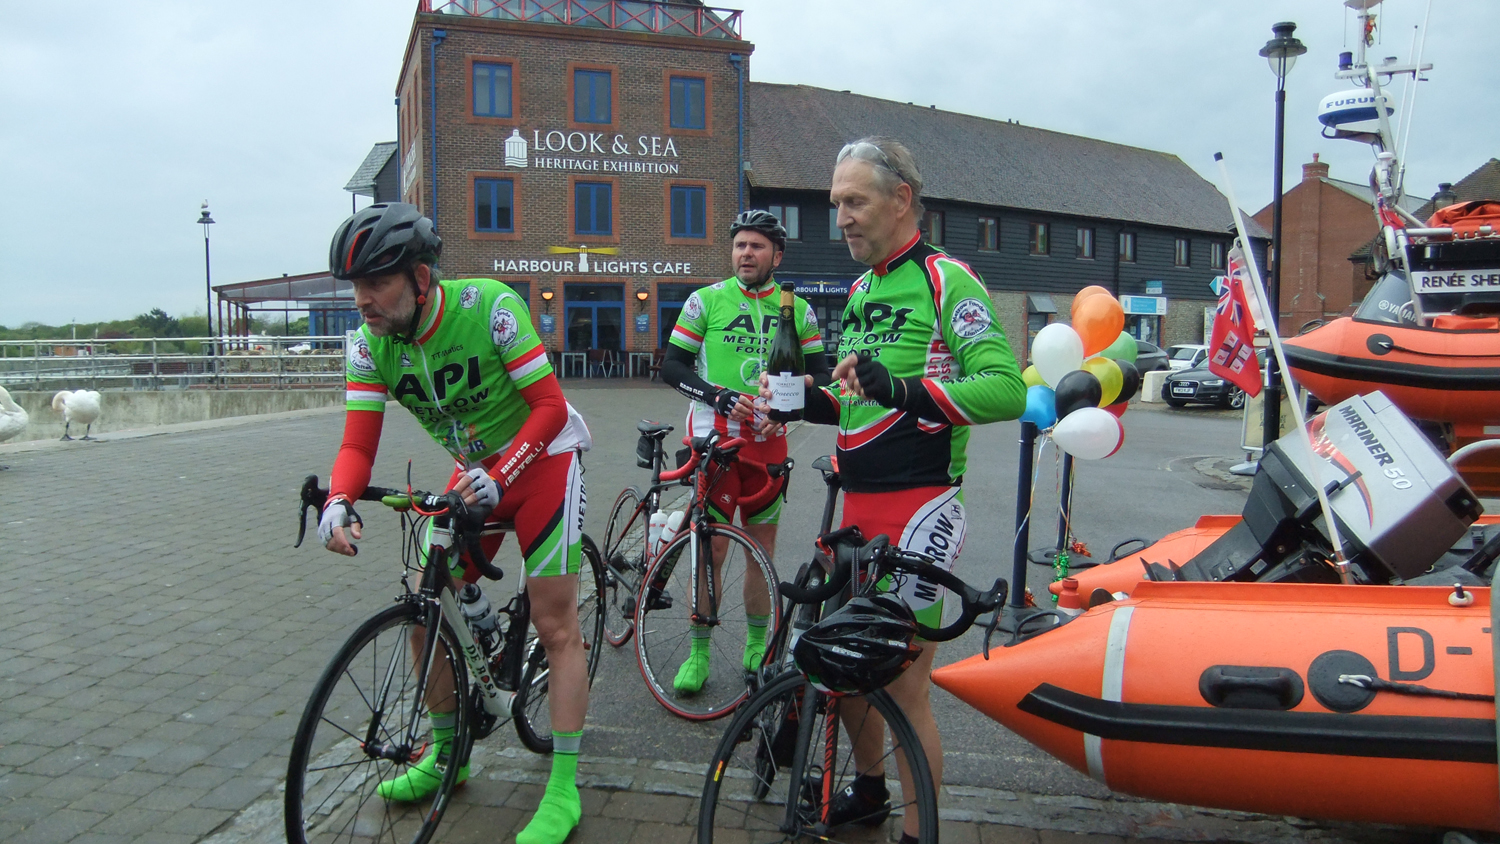 Cyclists arrive at the finish at Littlehampton Lifeboat Station